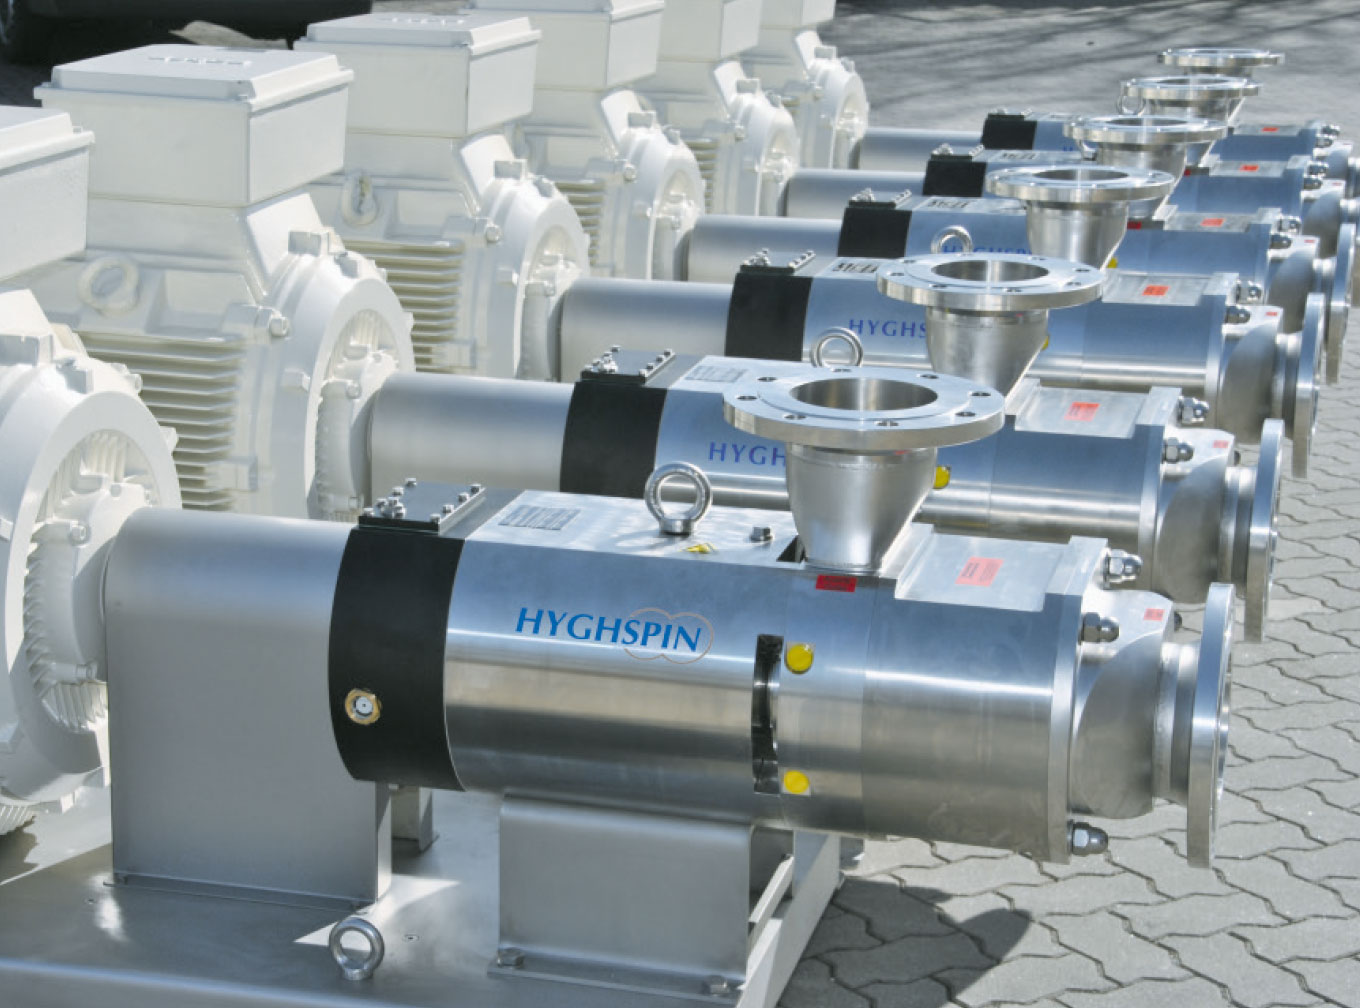 HYGHSPIN Extended transfer pumps